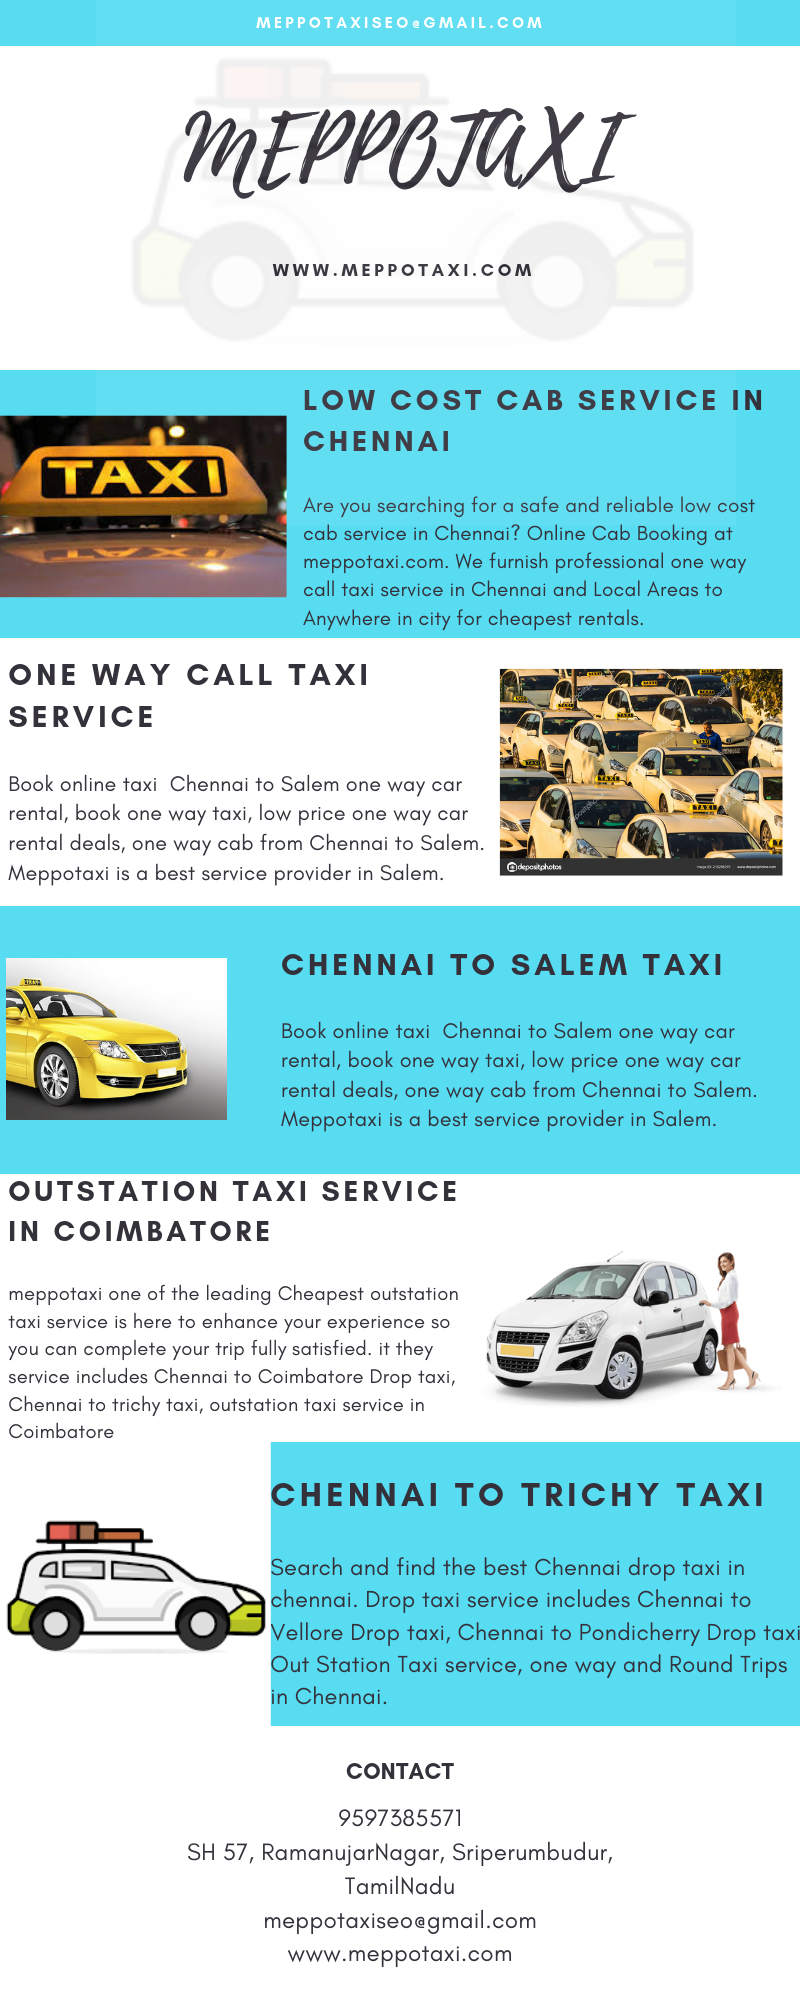 Meppotaxi One Of The Leading Cheapest Outstation Taxi Service Is